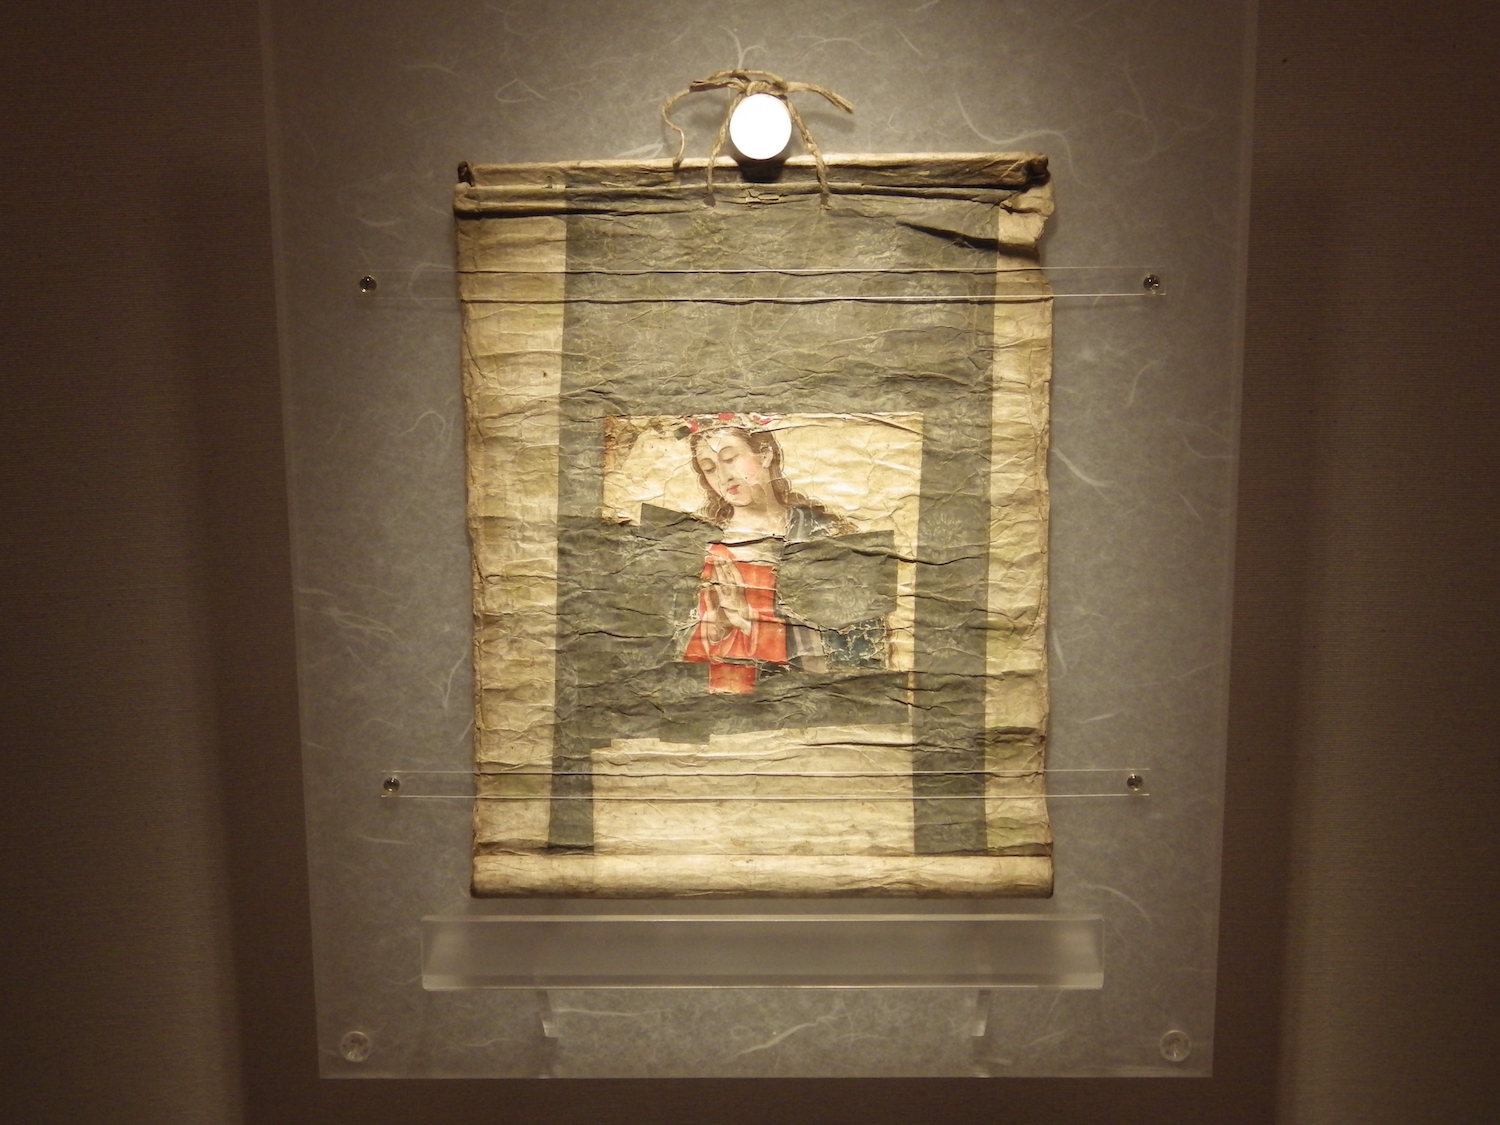 Our Lady of the Snows, a scroll reproduced for the scene where Rodriguez leads the hidden Christians in worship.